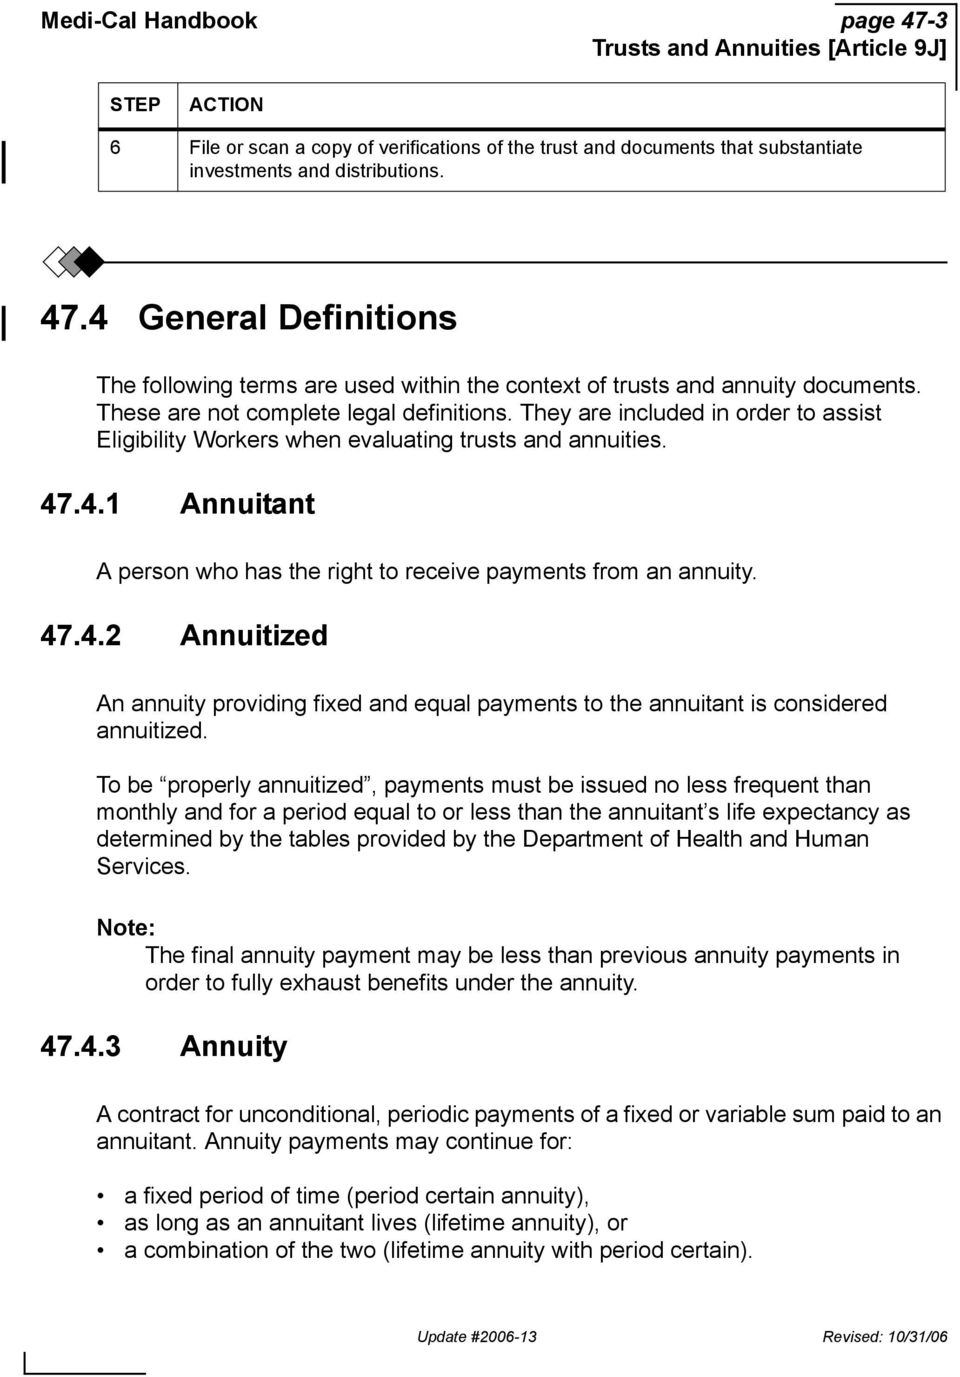 .4.1 Annuitant A person who has the right to receive payments from an annuity. 47.4.2 Annuitized An annuity providing fixed and equal payments to the annuitant is considered annuitized.